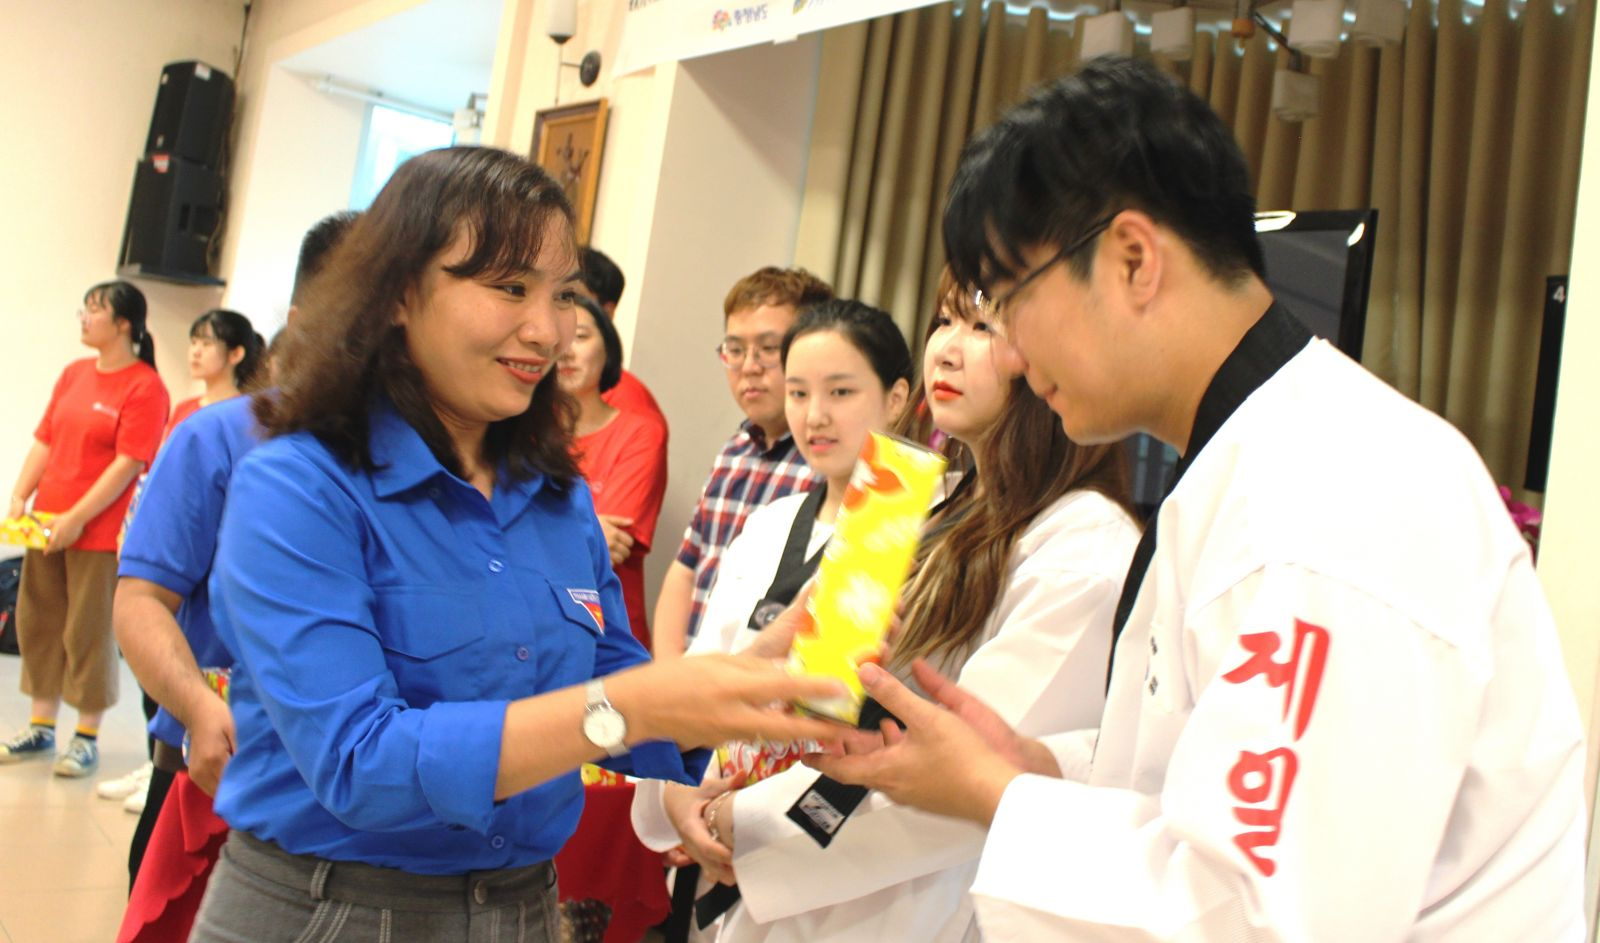 Deputy Secretary of Long An provincial Youth Union - Le Thi Cam Tu gave gifts to the youth and teenagers in Chungcheongnam province after 6 days working in Long An